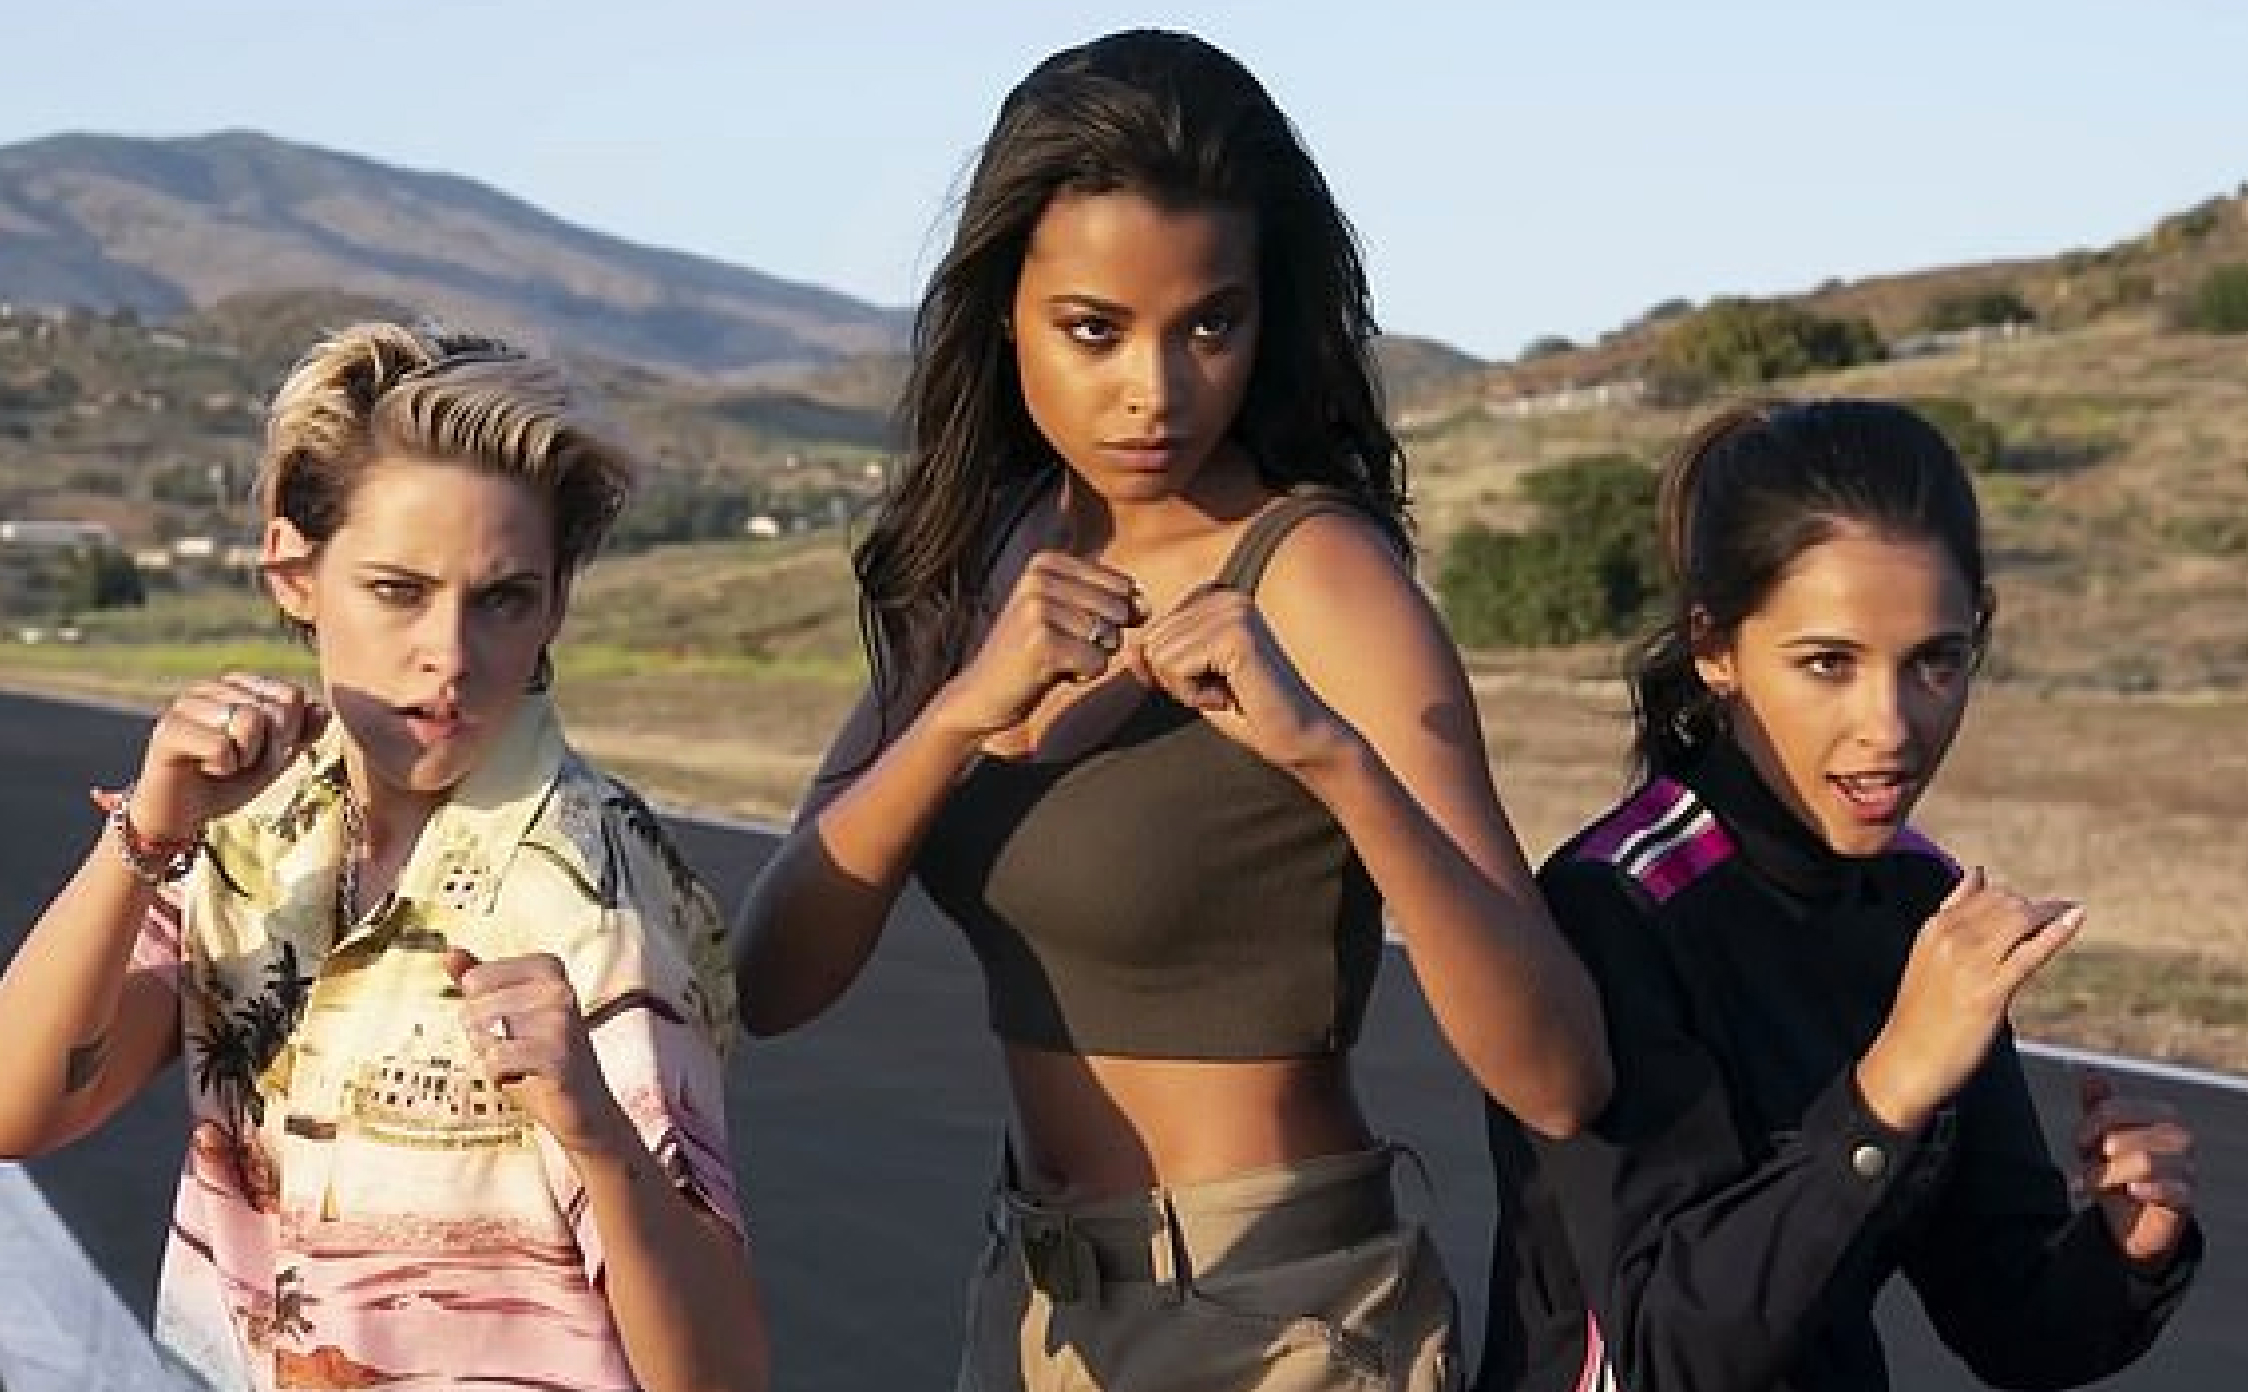 New Woke Feminist 'Charlie's Angels' Movie Was Expected to Make $35 Millon Opening Day...It made $8M